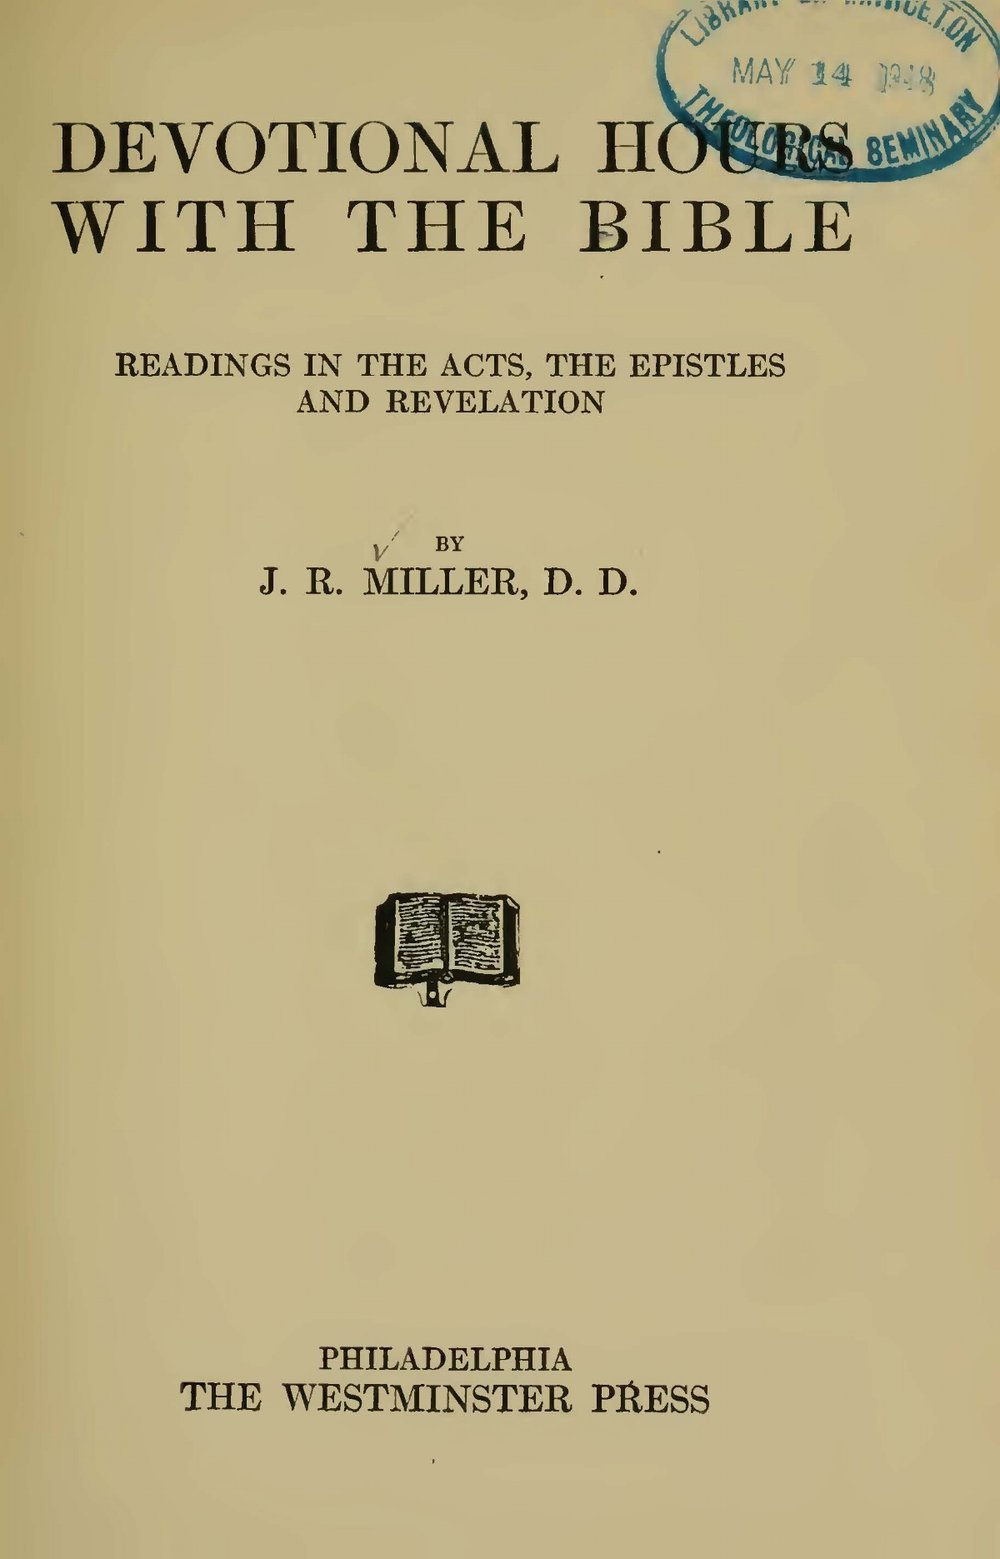 Miller, James Russell, Devotional Hours With the Bible, Vol. 8 Title Page.jpg